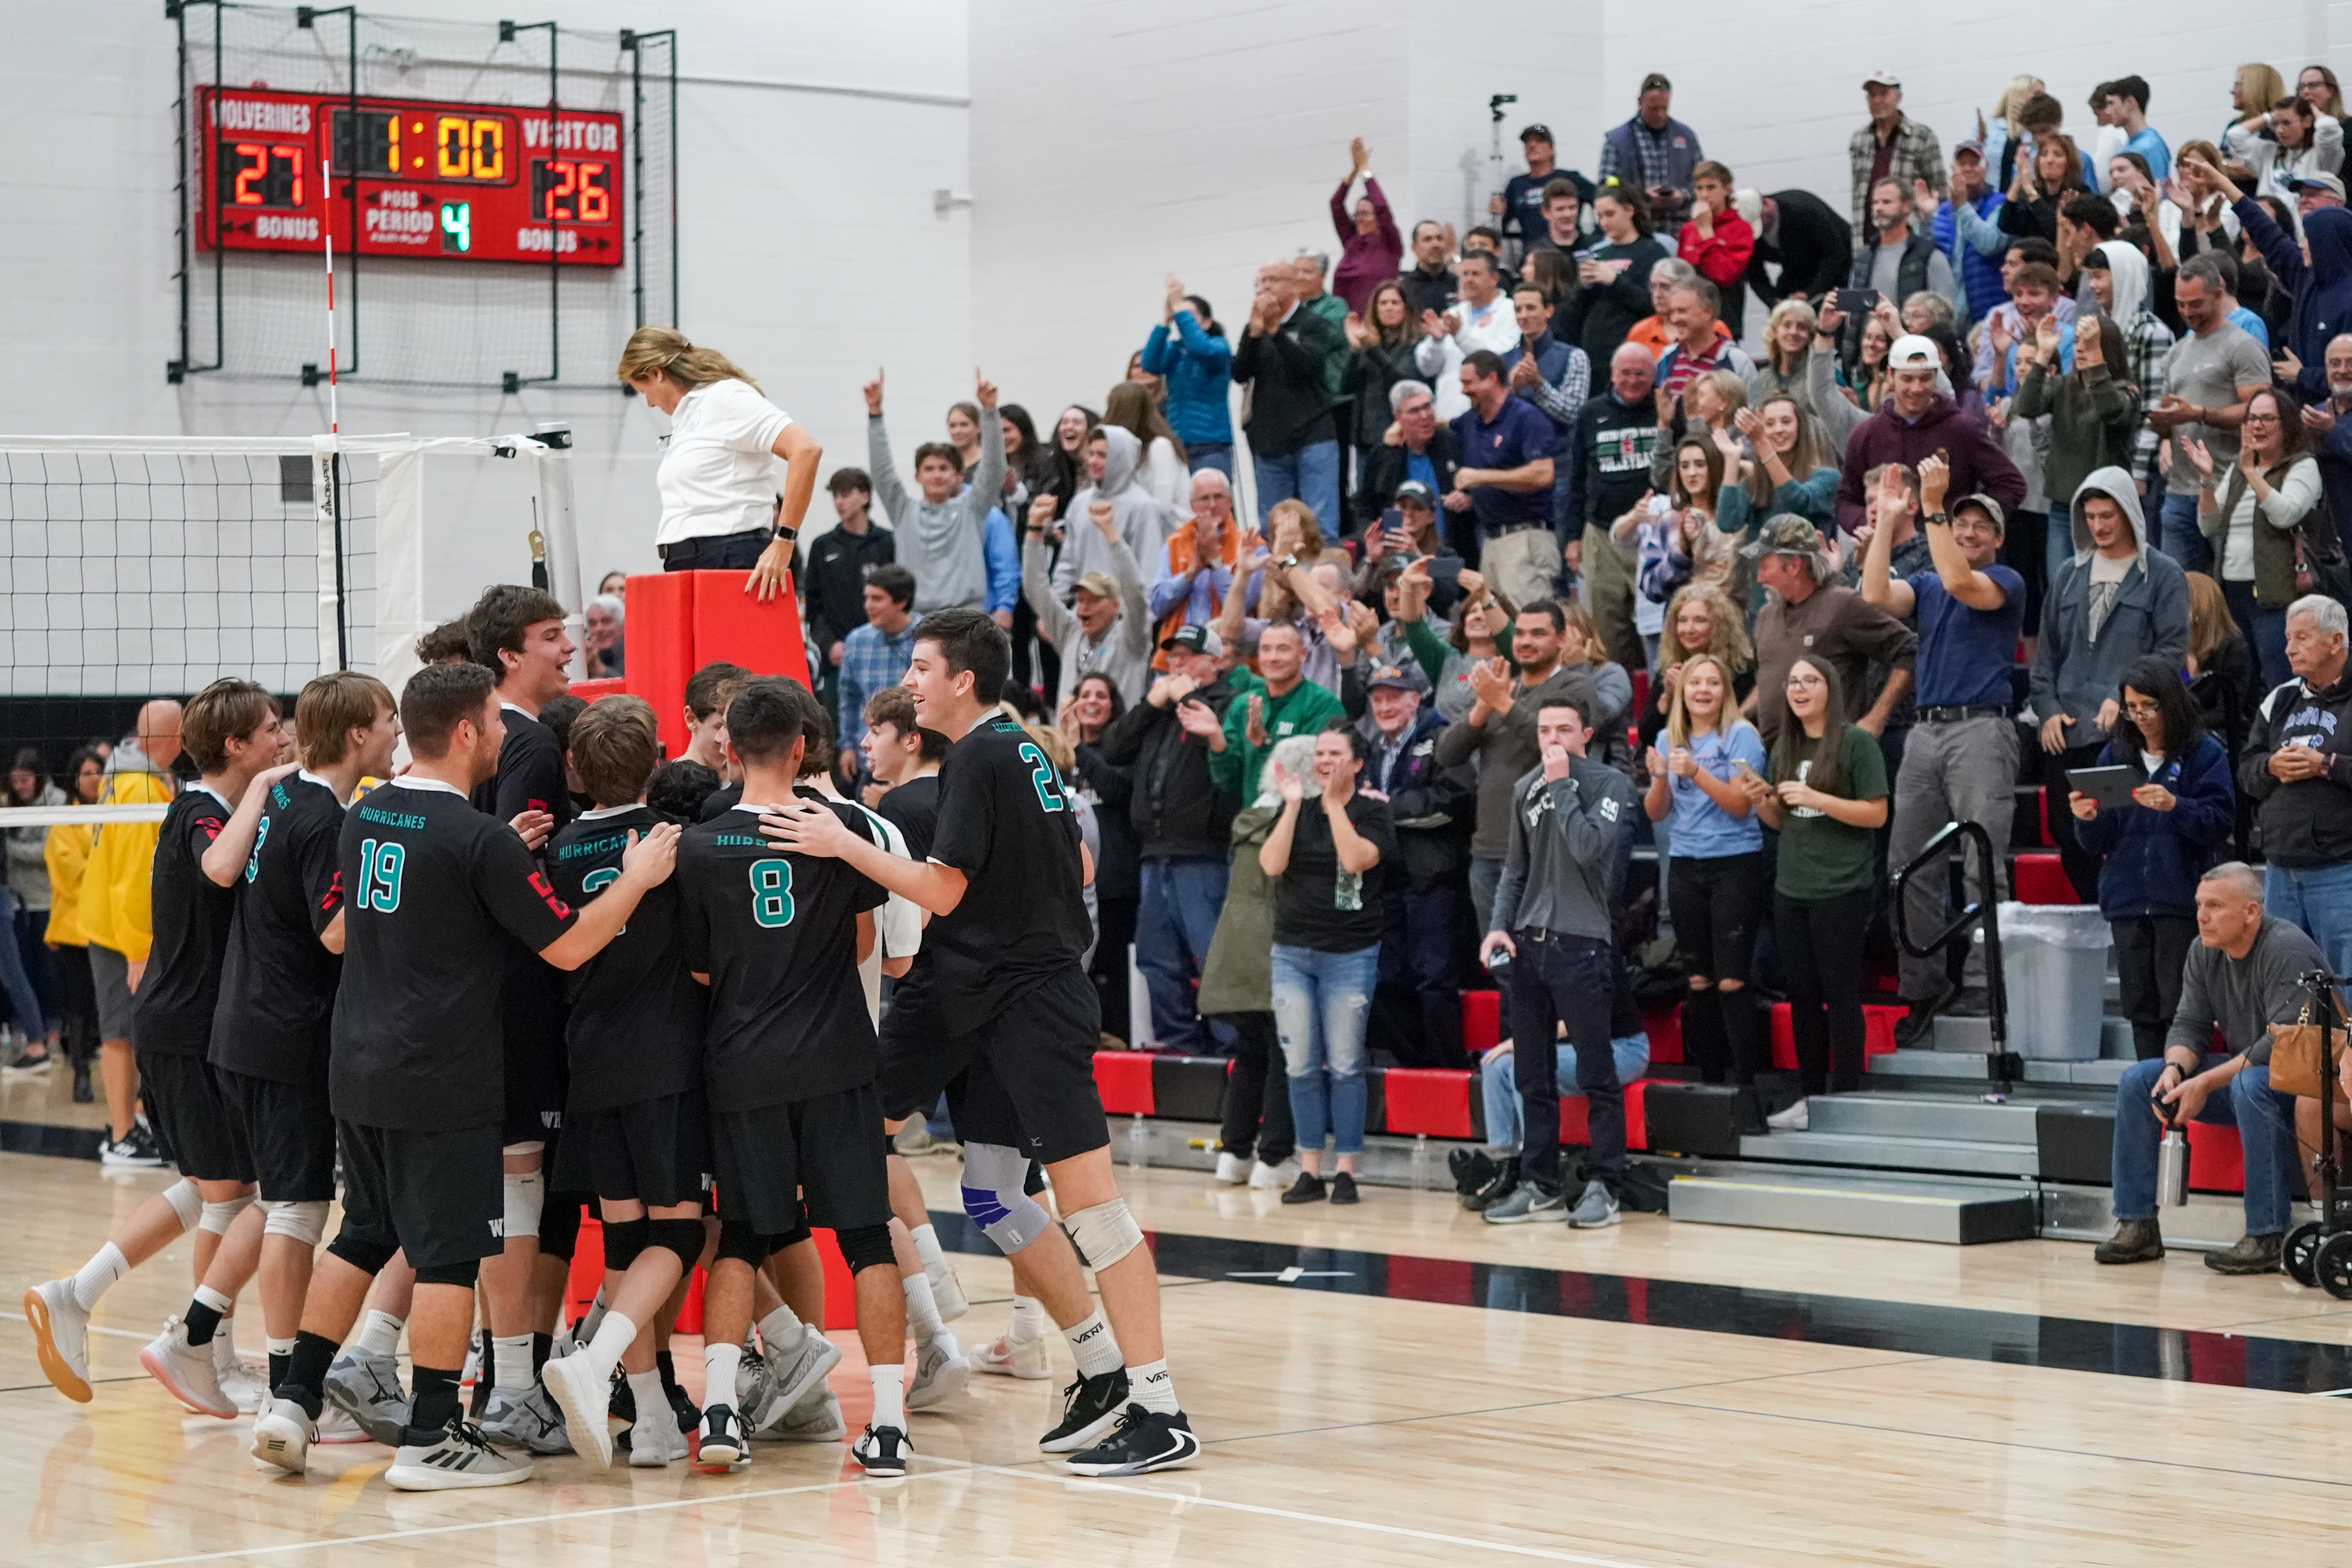 The Hurricanes celebrate their first ever county title while their crowd cheers them on.